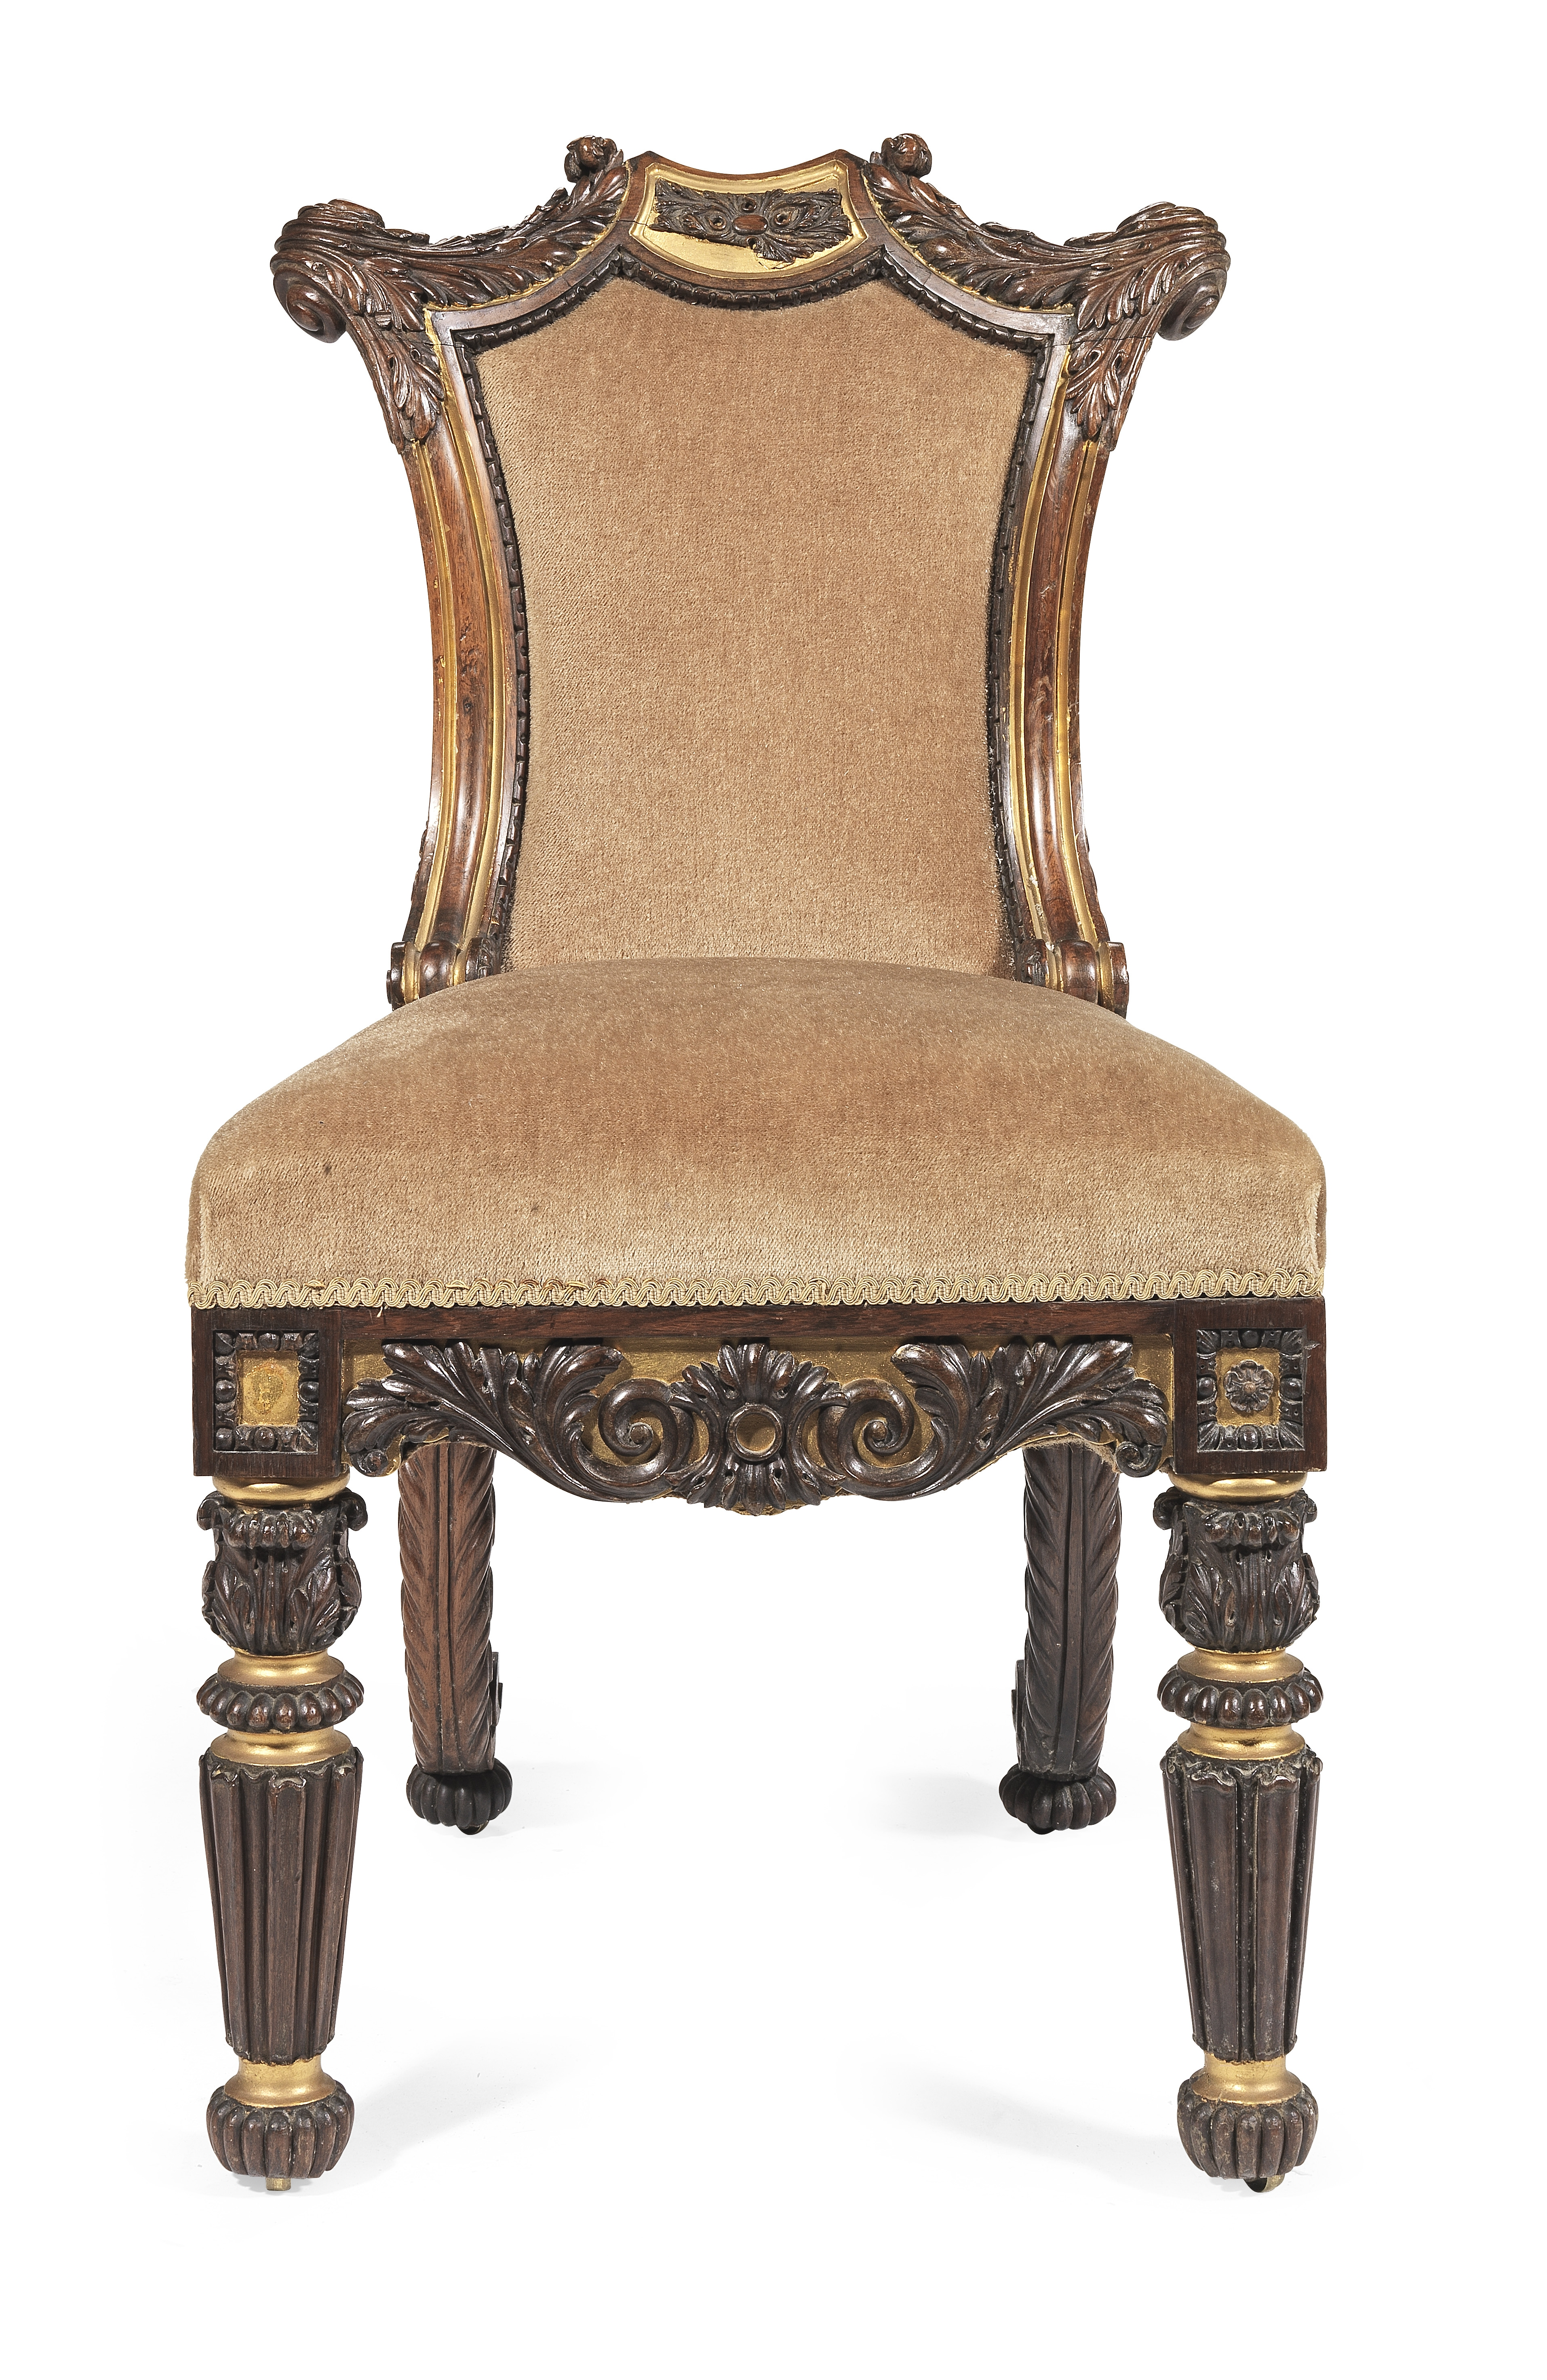 Lot 46 - A George IV solid rosewood and parcel gilt suite of seat furniture attributed to Gillows comprisi...